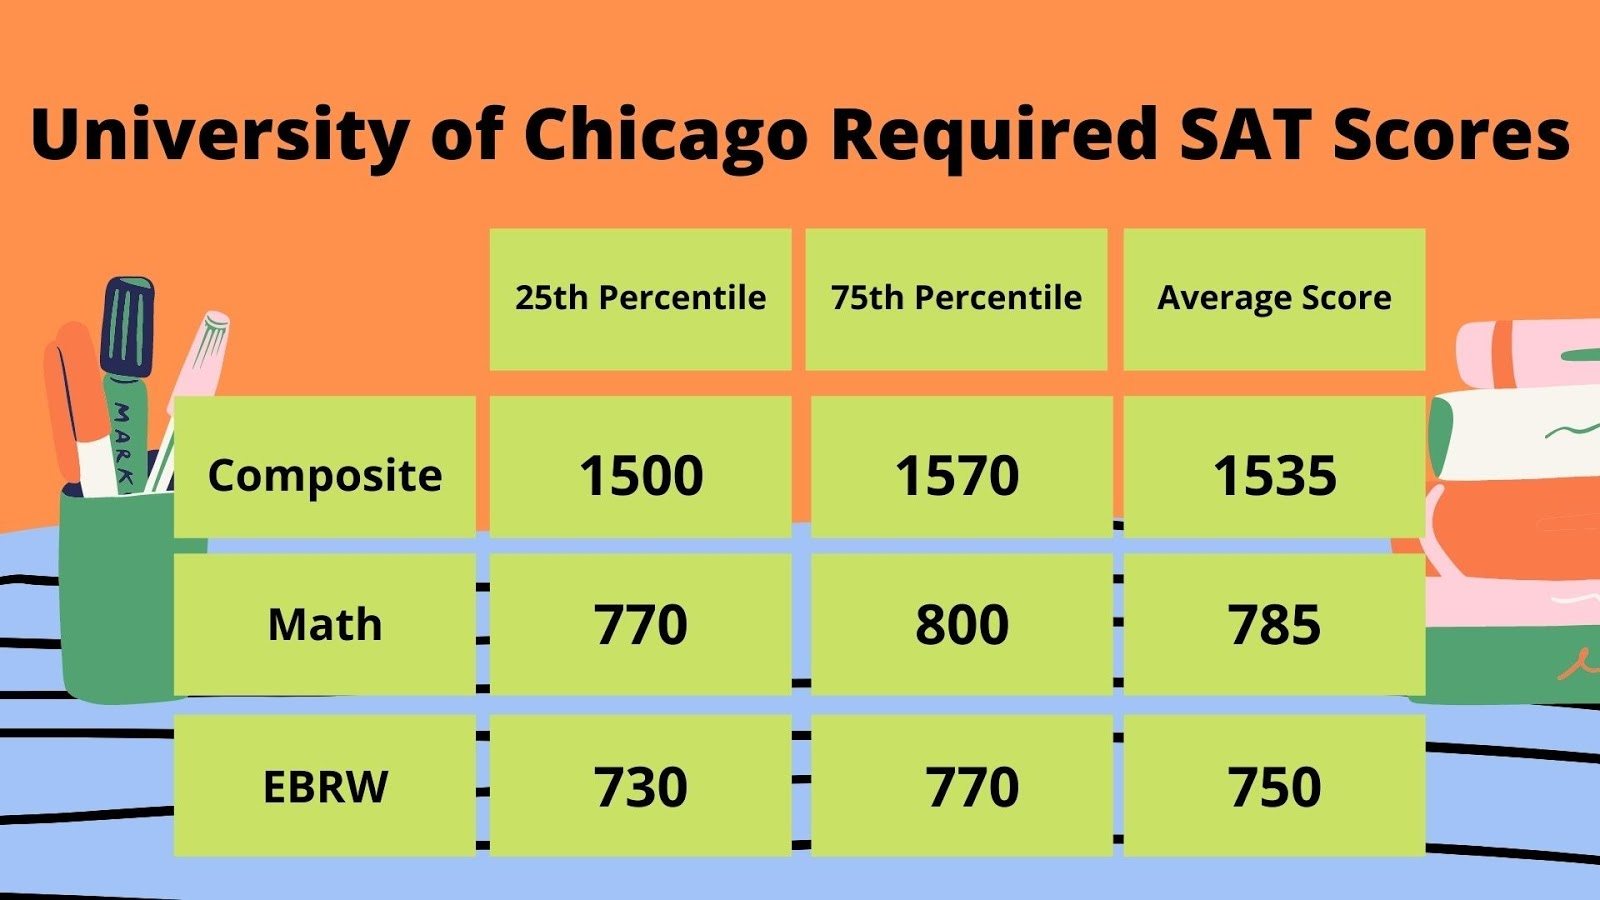 University of Chicago Required SAT Scores